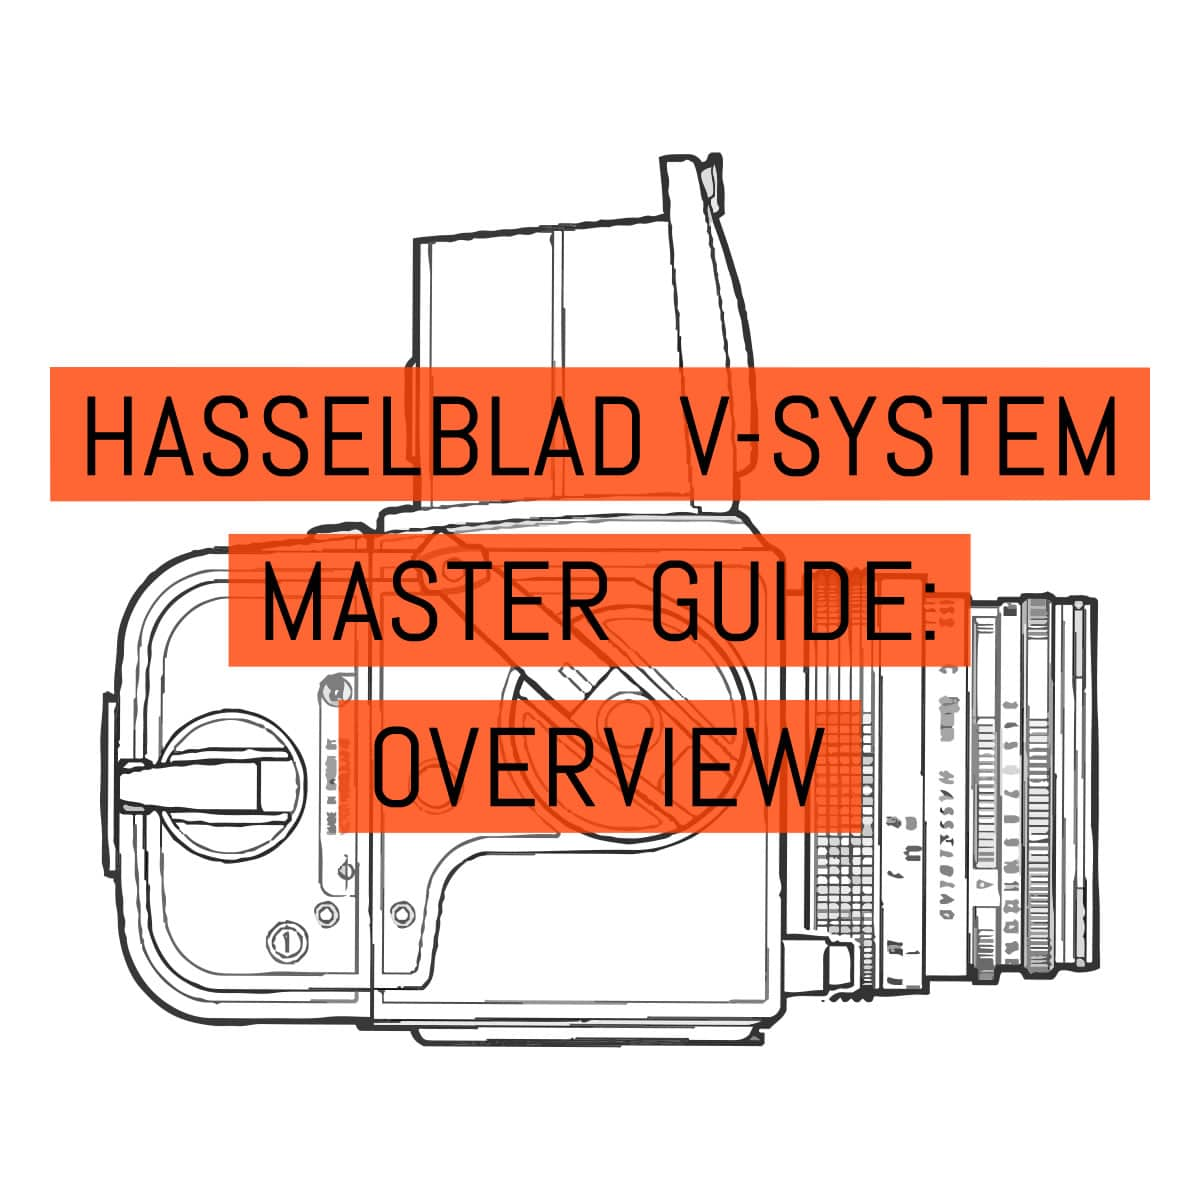 The Hasselblad V-System master guide: overview